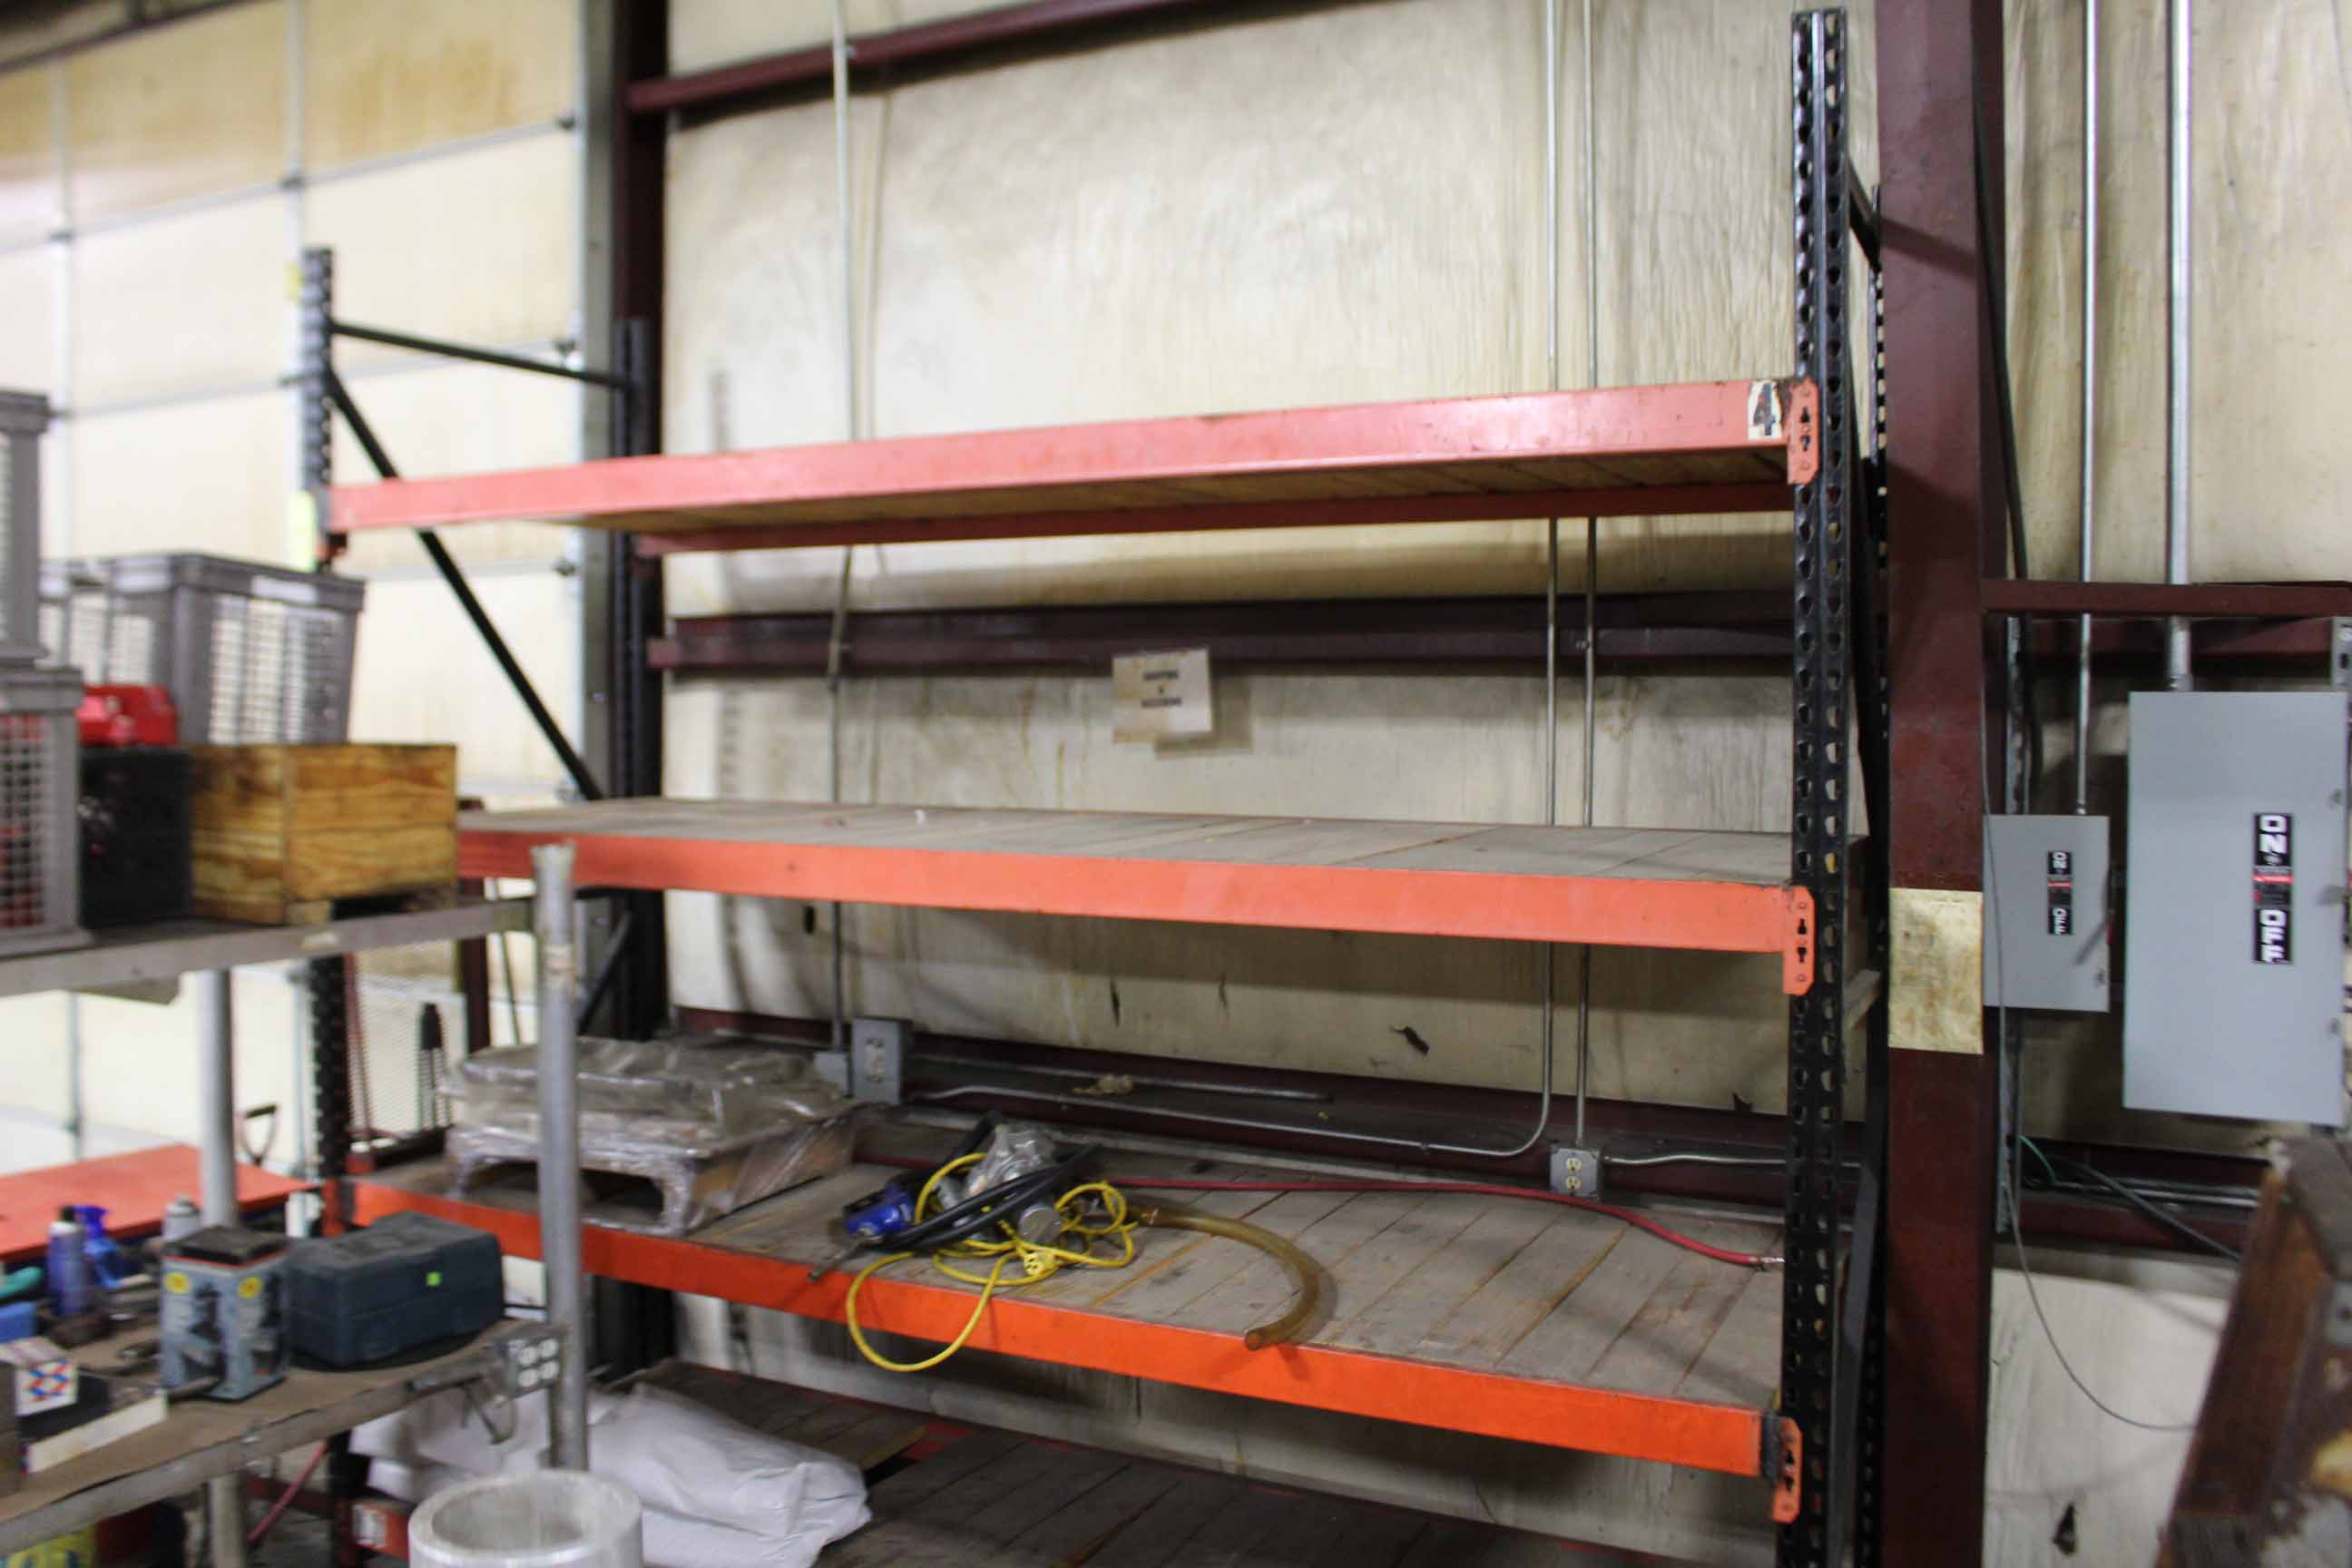 Lot 23 - PALLET RACK SECTION, 10' x 10' x 3-1/2', w/wood inserts